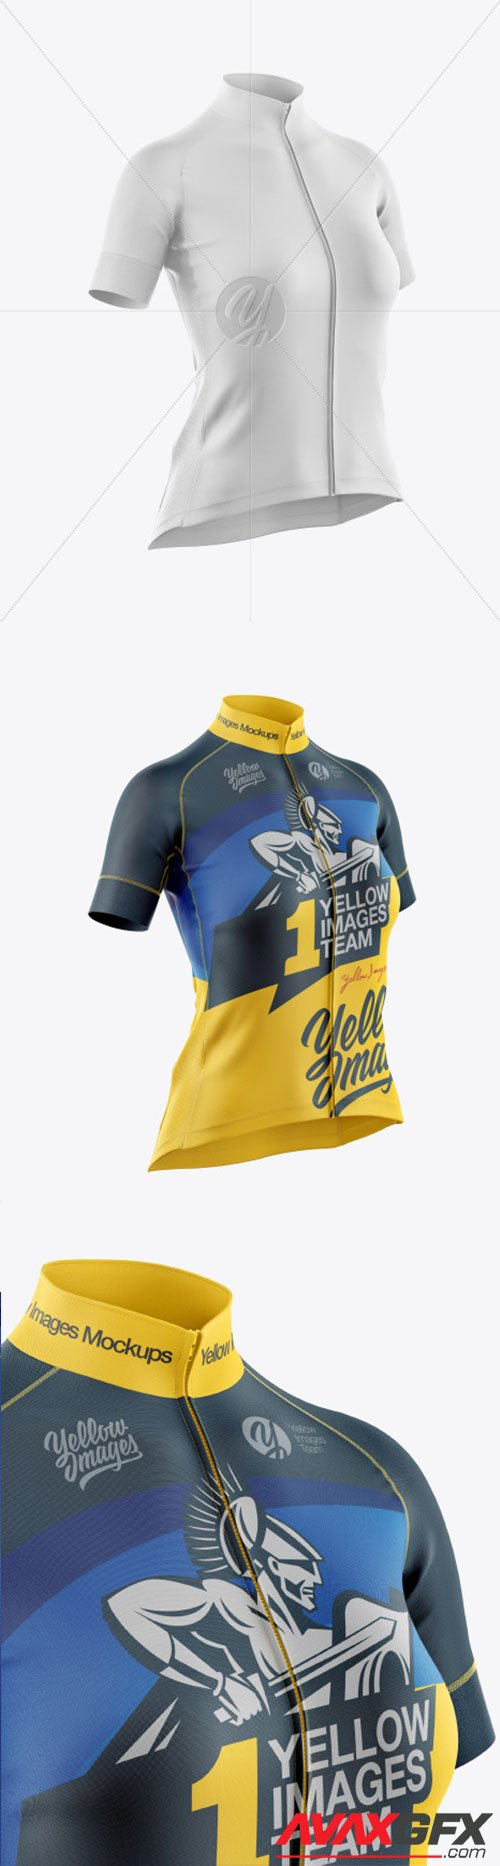 Download Women's Cycling Jersey Mockup 60910 » AVAXGFX - All ...